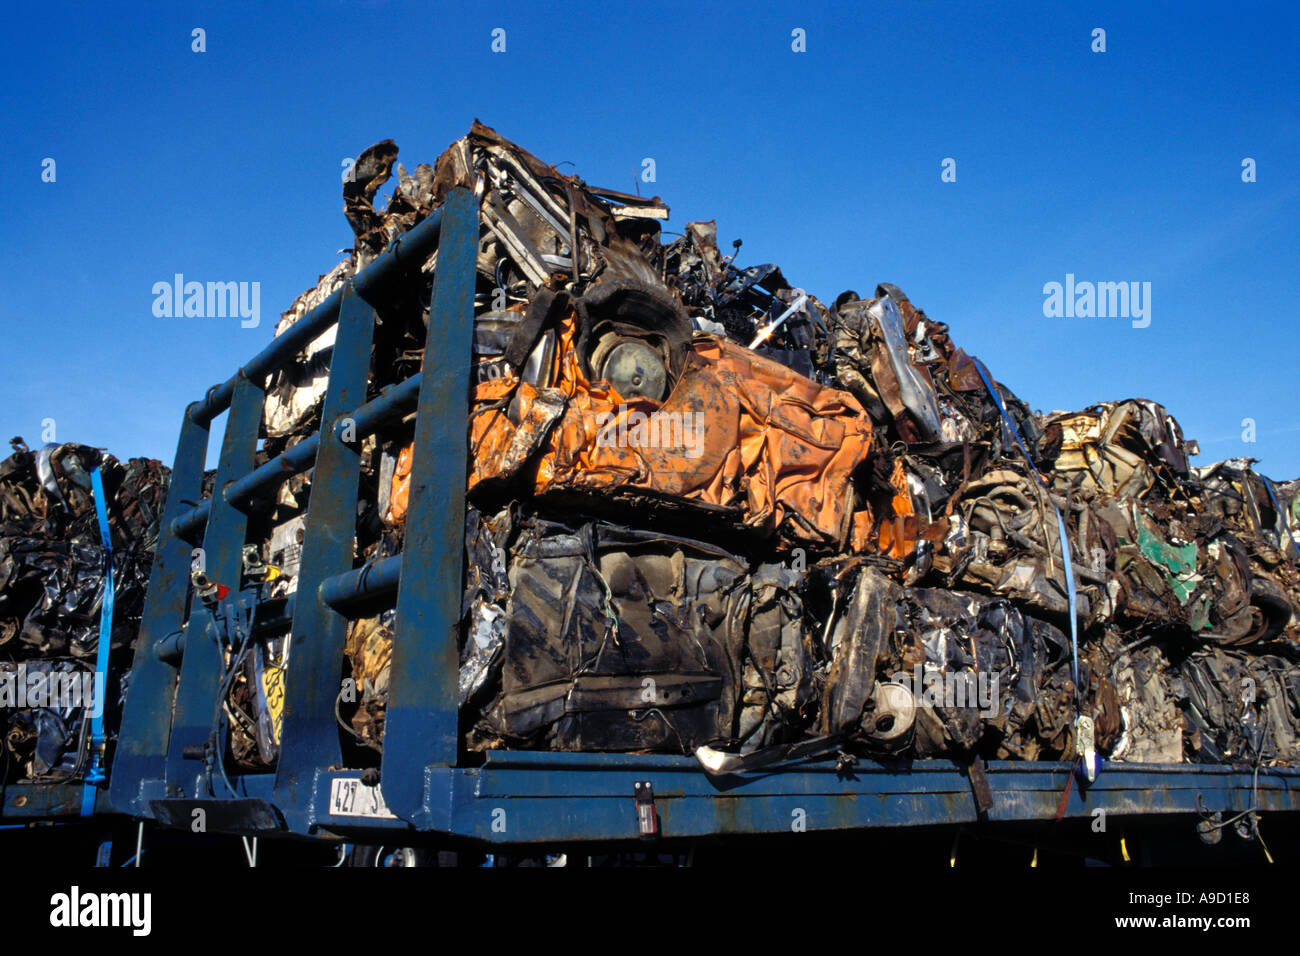 Breaker s yard - compressed vehicles ready for reprocessing - Stock Image